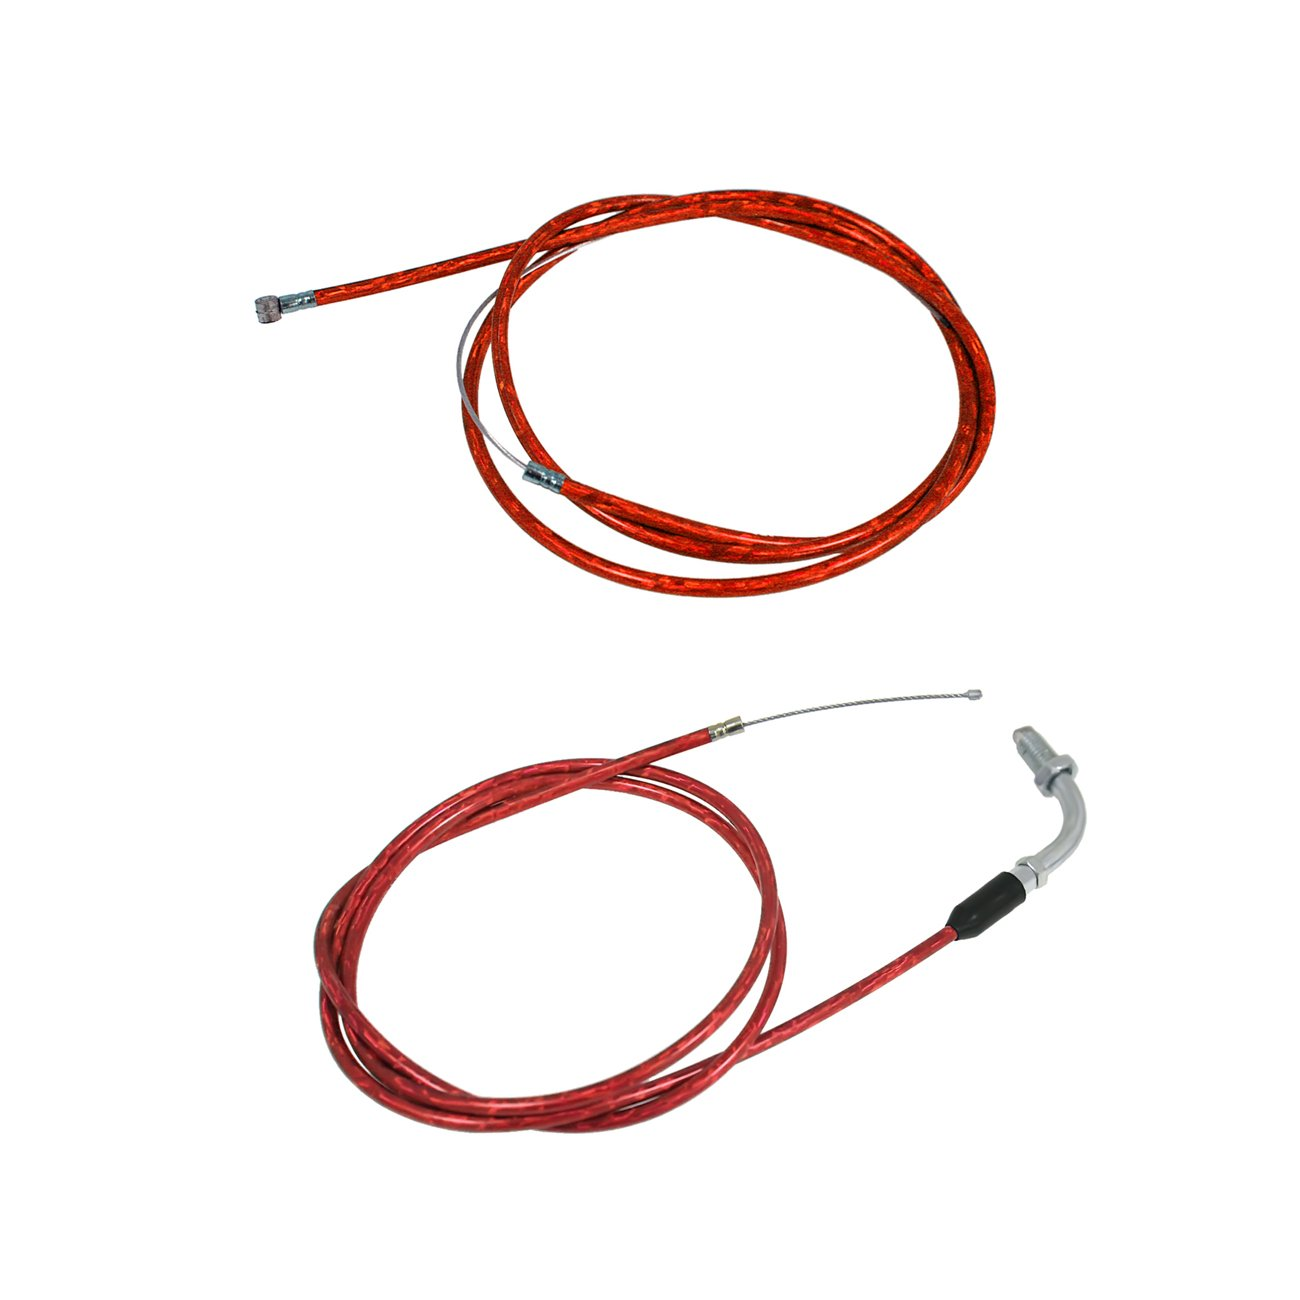 JRL Red Clutch Line & Throttle Cable Fit 49cc 60cc 66cc 80cc Engine Motorized Bike Huang Machinery